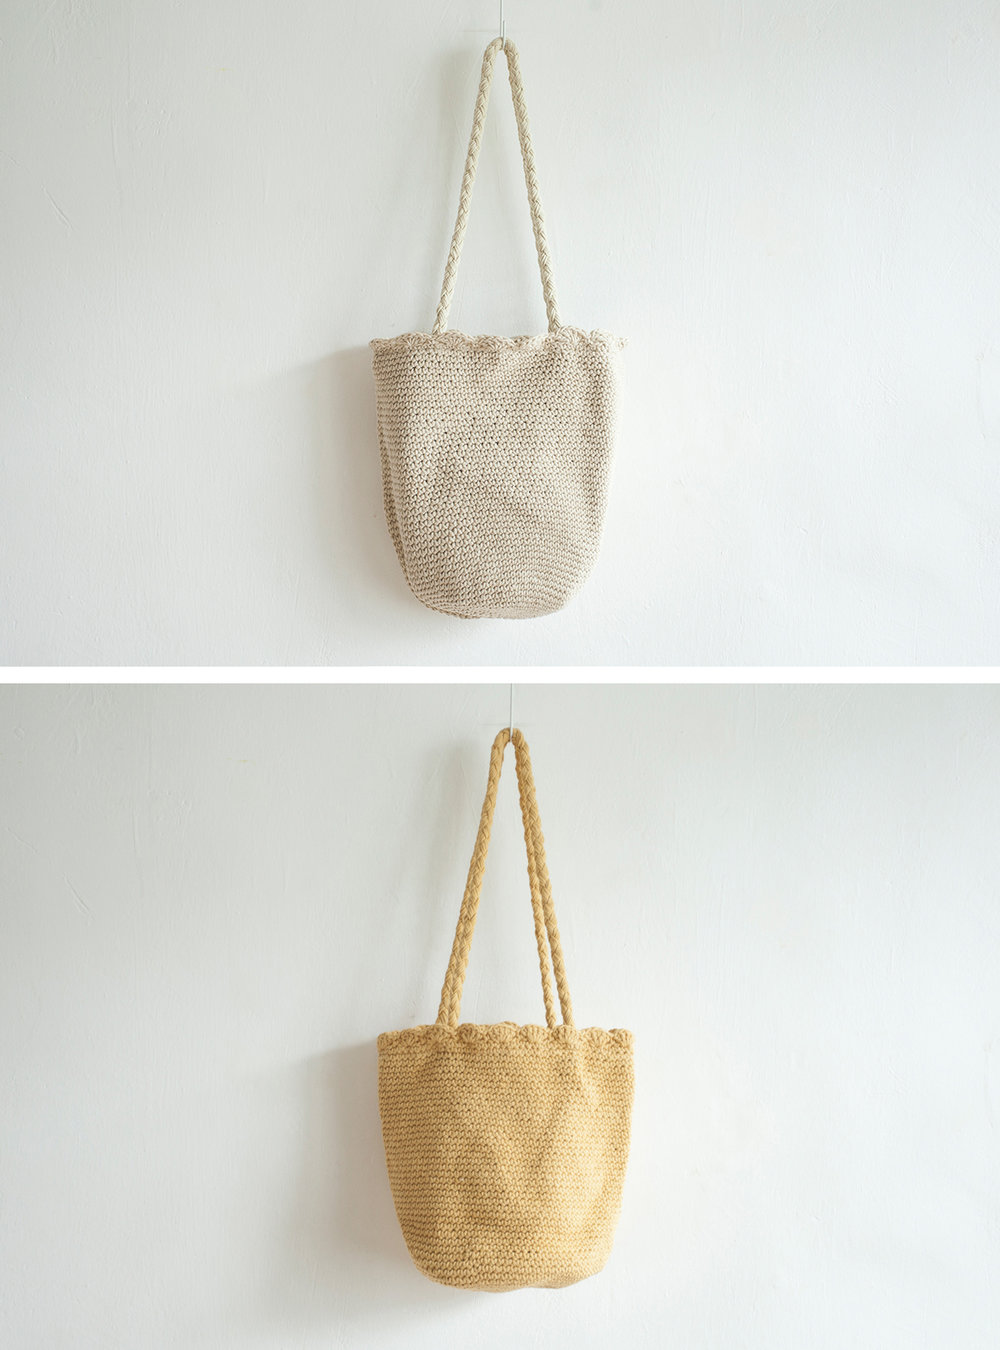 NBA1046 teza string knit bucket bag early bird price: HK$288 / NT$1240    regular price: HK$338 / NT$1450    color: beige / mango yellow    made in korea      measurement (cm)    head size 33 x 24 strap length 68